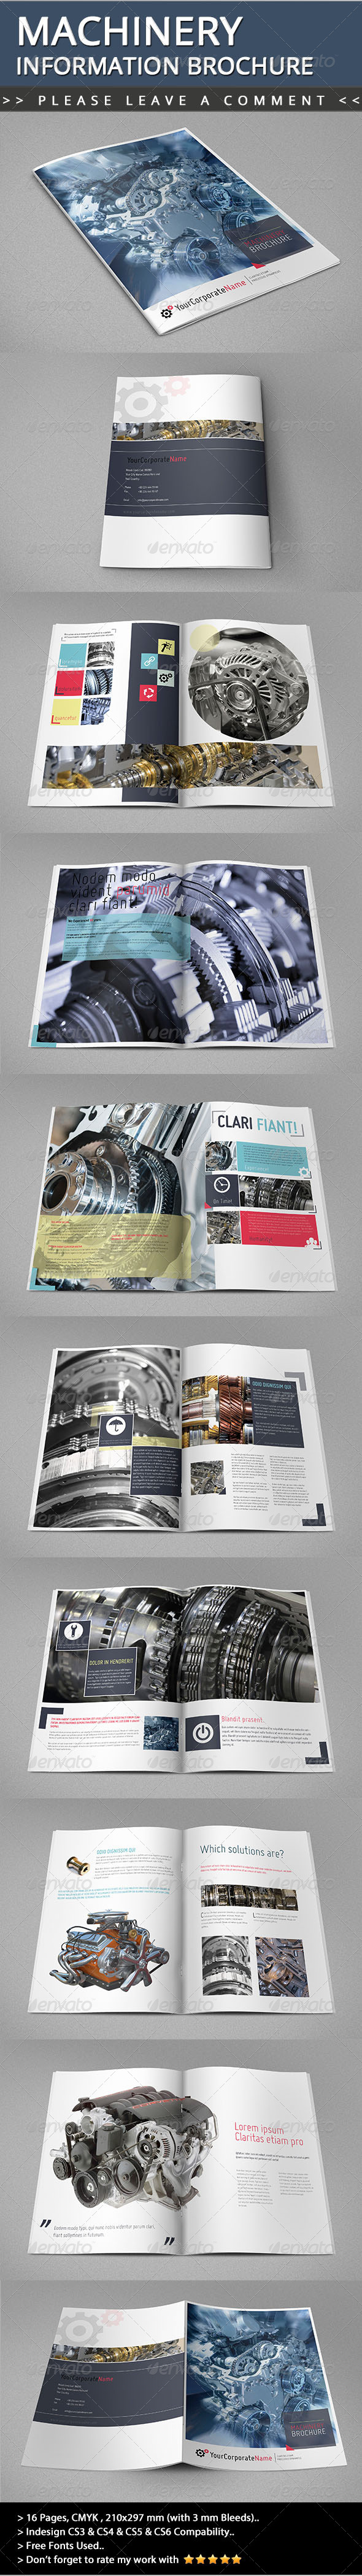 GraphicRiver Machinery Information Brochure 5067838